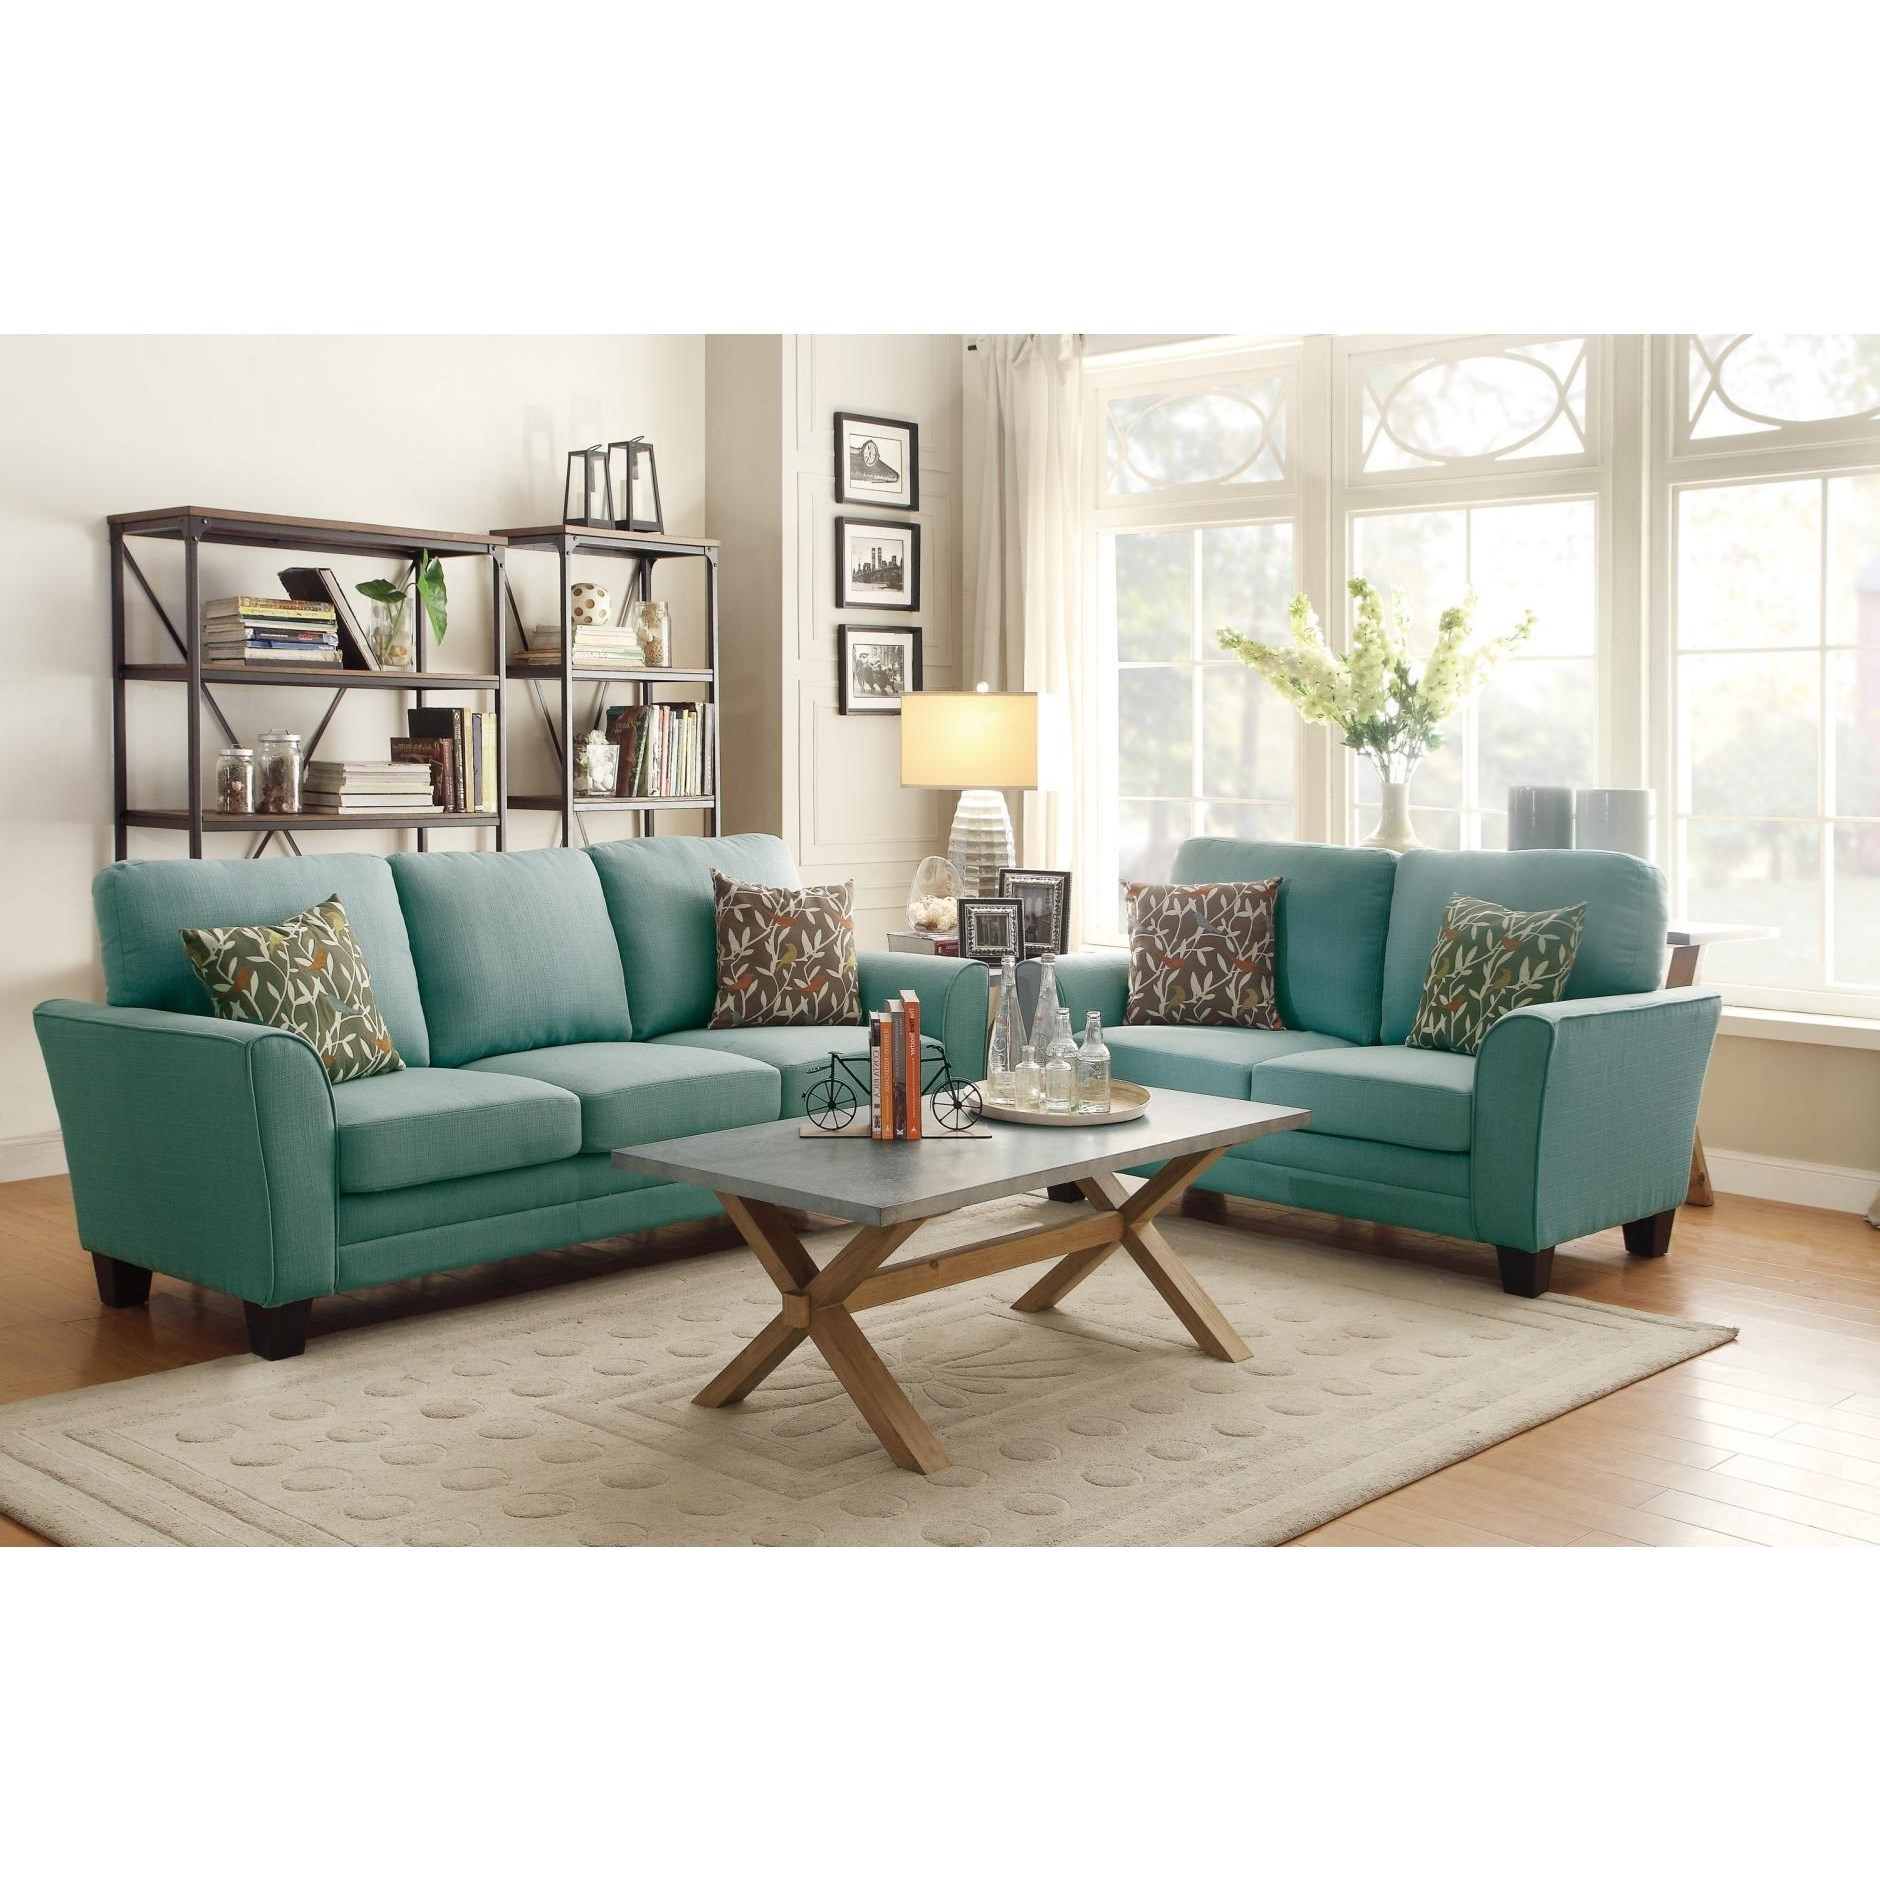 Adair Living Room Group by Homelegance at Value City Furniture